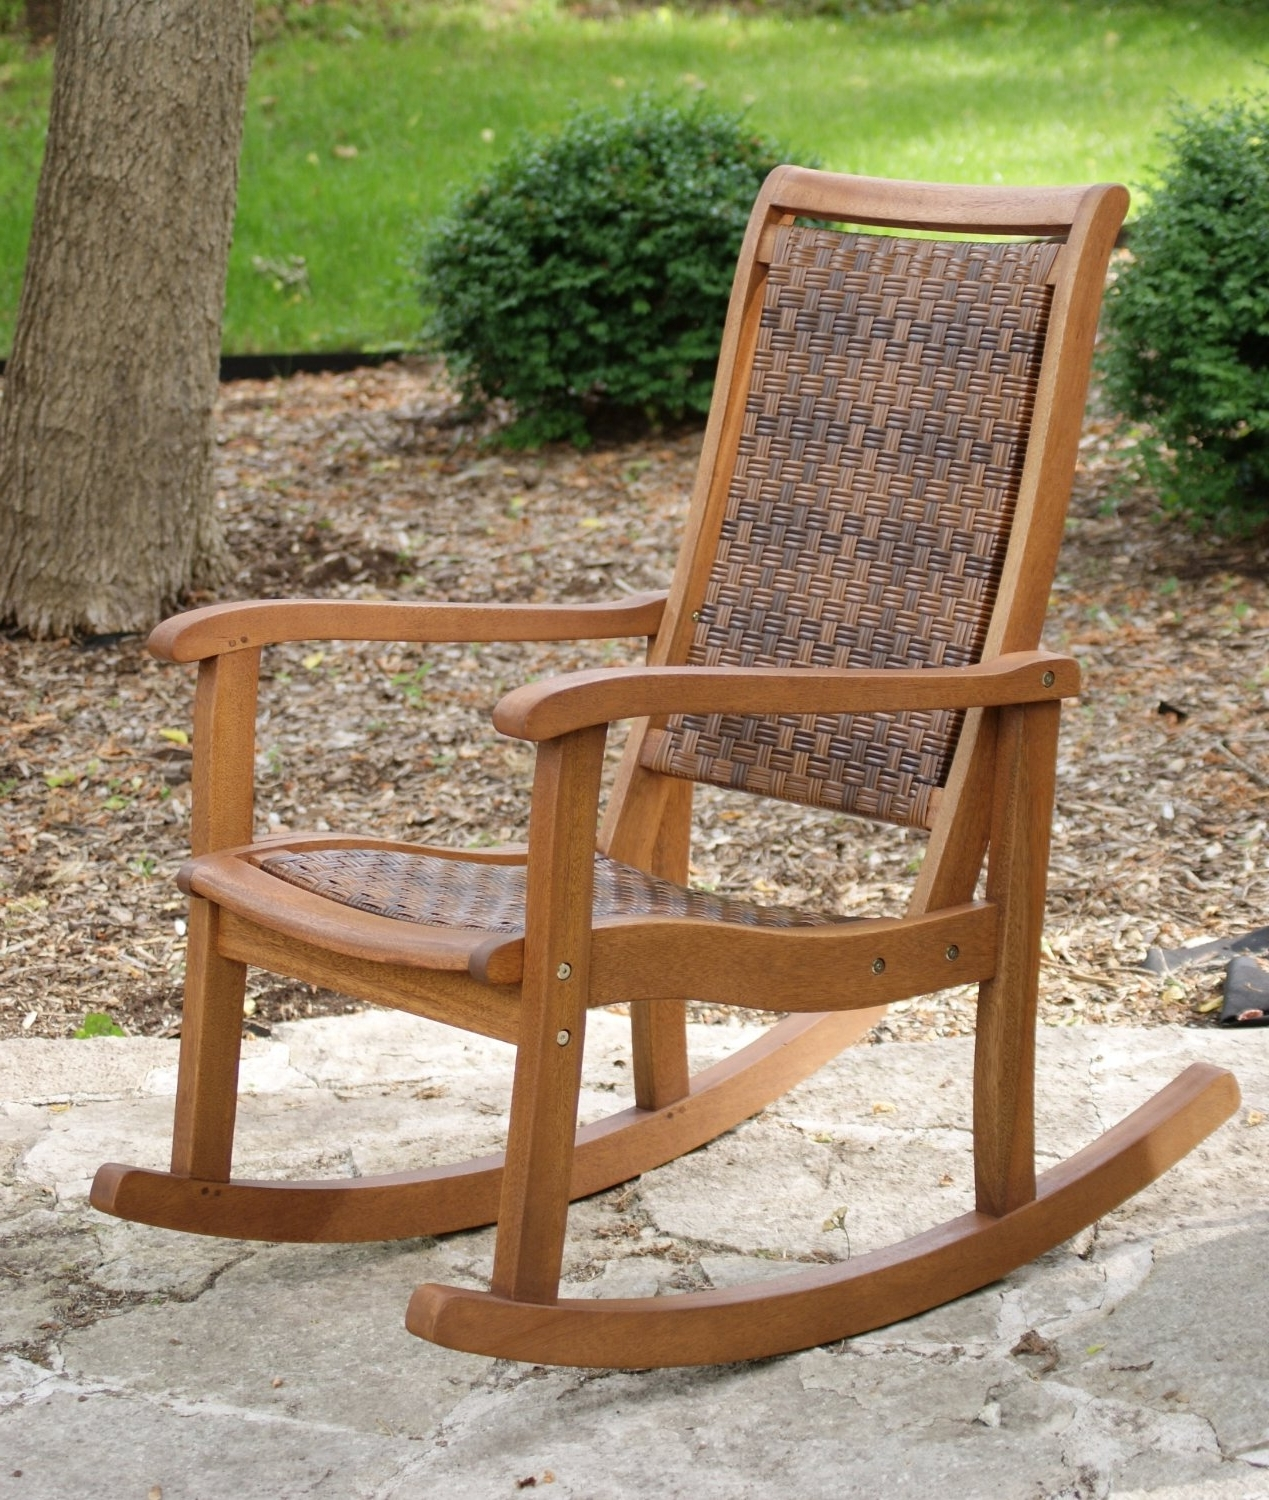 Most Recent Wicker Rocking Chairs For Outdoors In Great Rocking Patio Chairs Outdoor Wicker Rocking Chairs Patio (View 9 of 20)